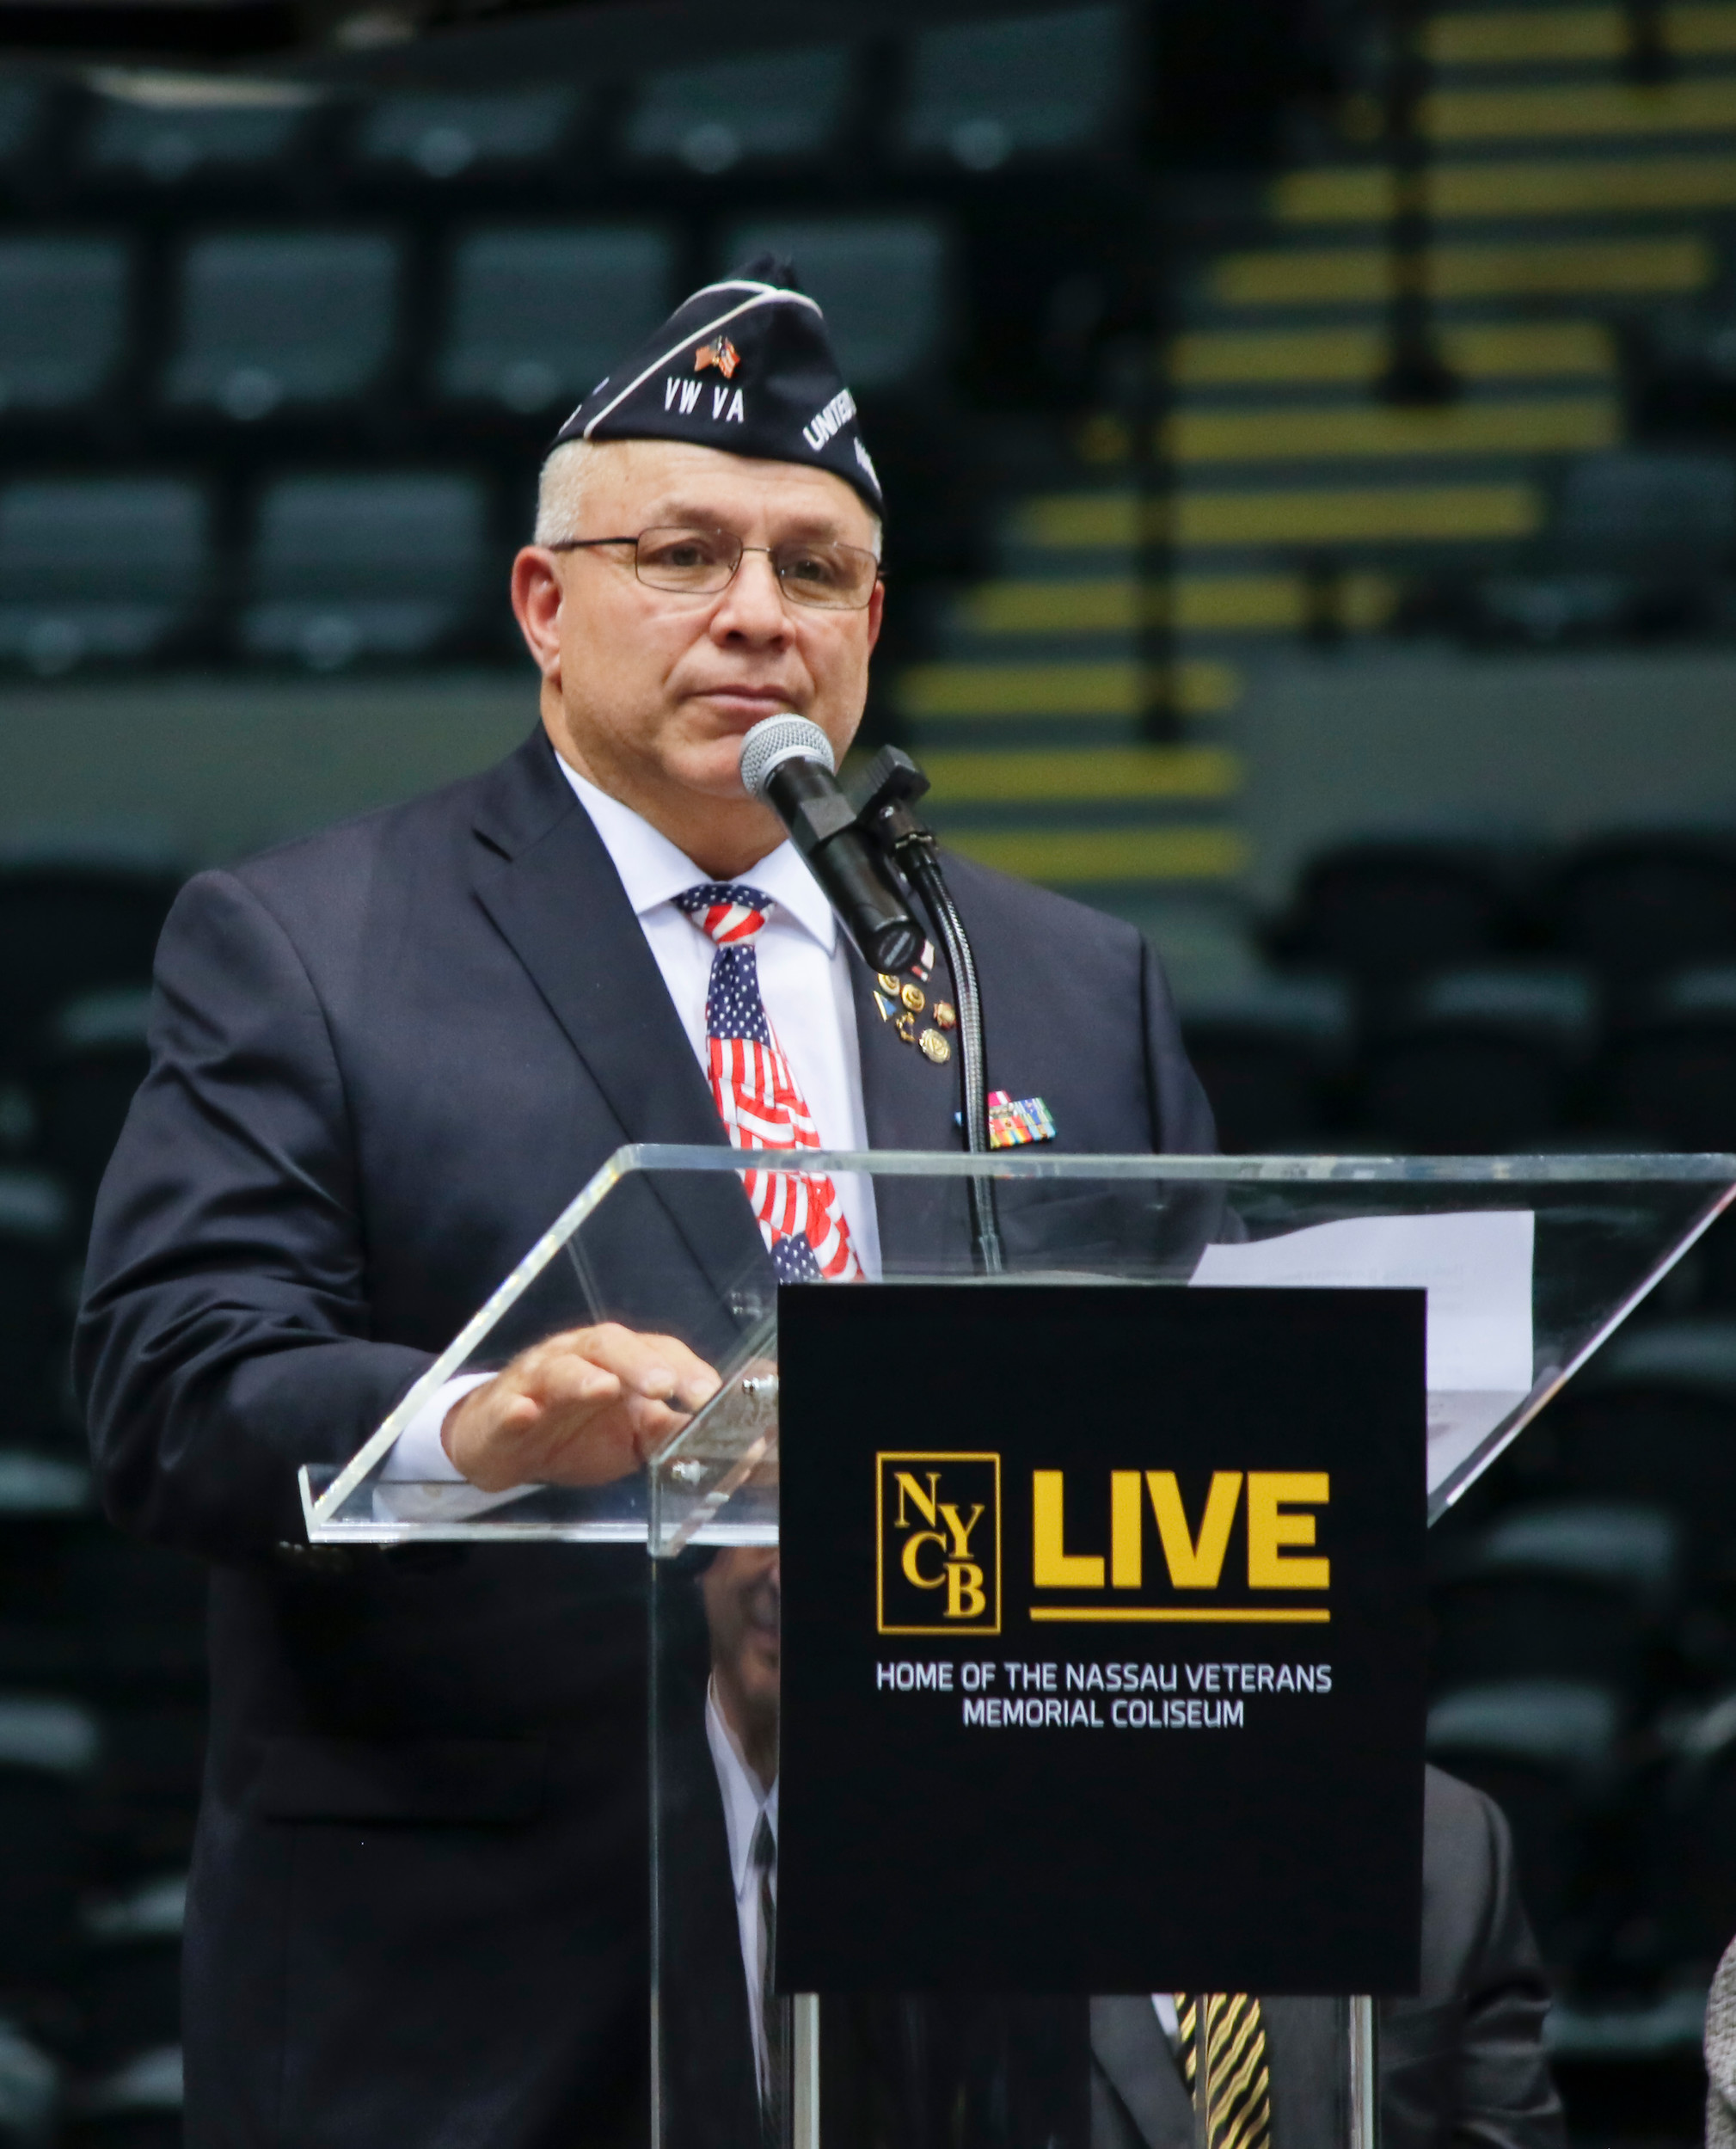 Frank Colon spoke about the new veterans memorial for the venue, which kept the name Nassau Veterans Memorial Coliseum, and recognized the veterans who were in attendance. The new coliseum has 8 seats that will always remain empty during every event in honor of those who have given the ultimate sacrifice. POW, MIA, all brances of the military, first responders and those who lost their lives in 9-11. These seats are marked with a special emblem.